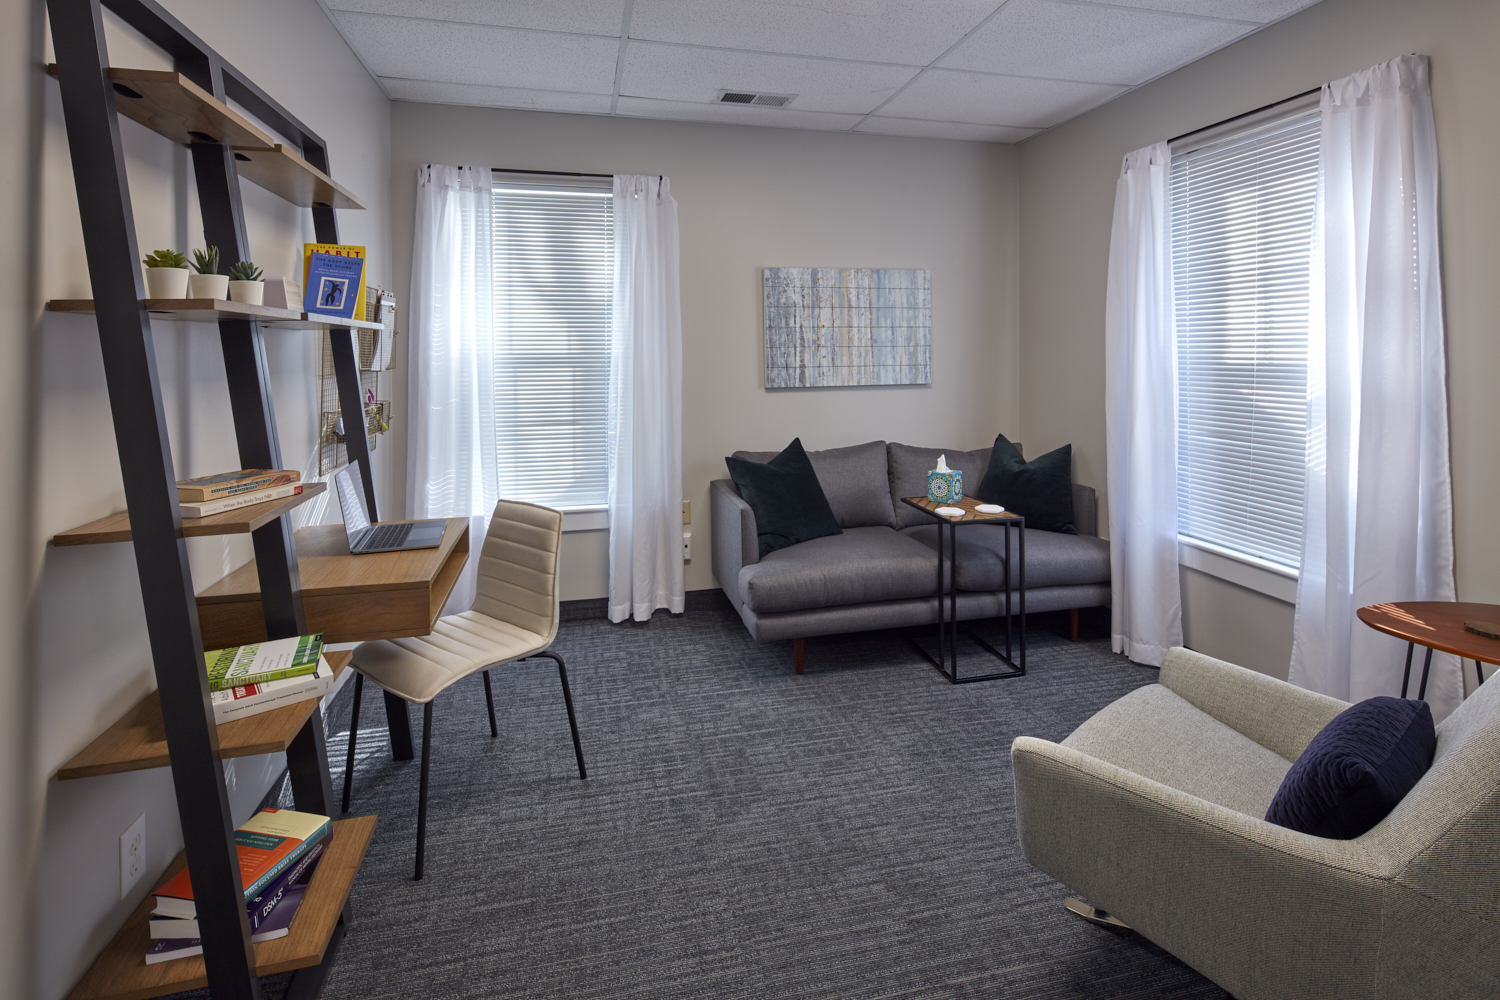 Private Practice Office for Rent